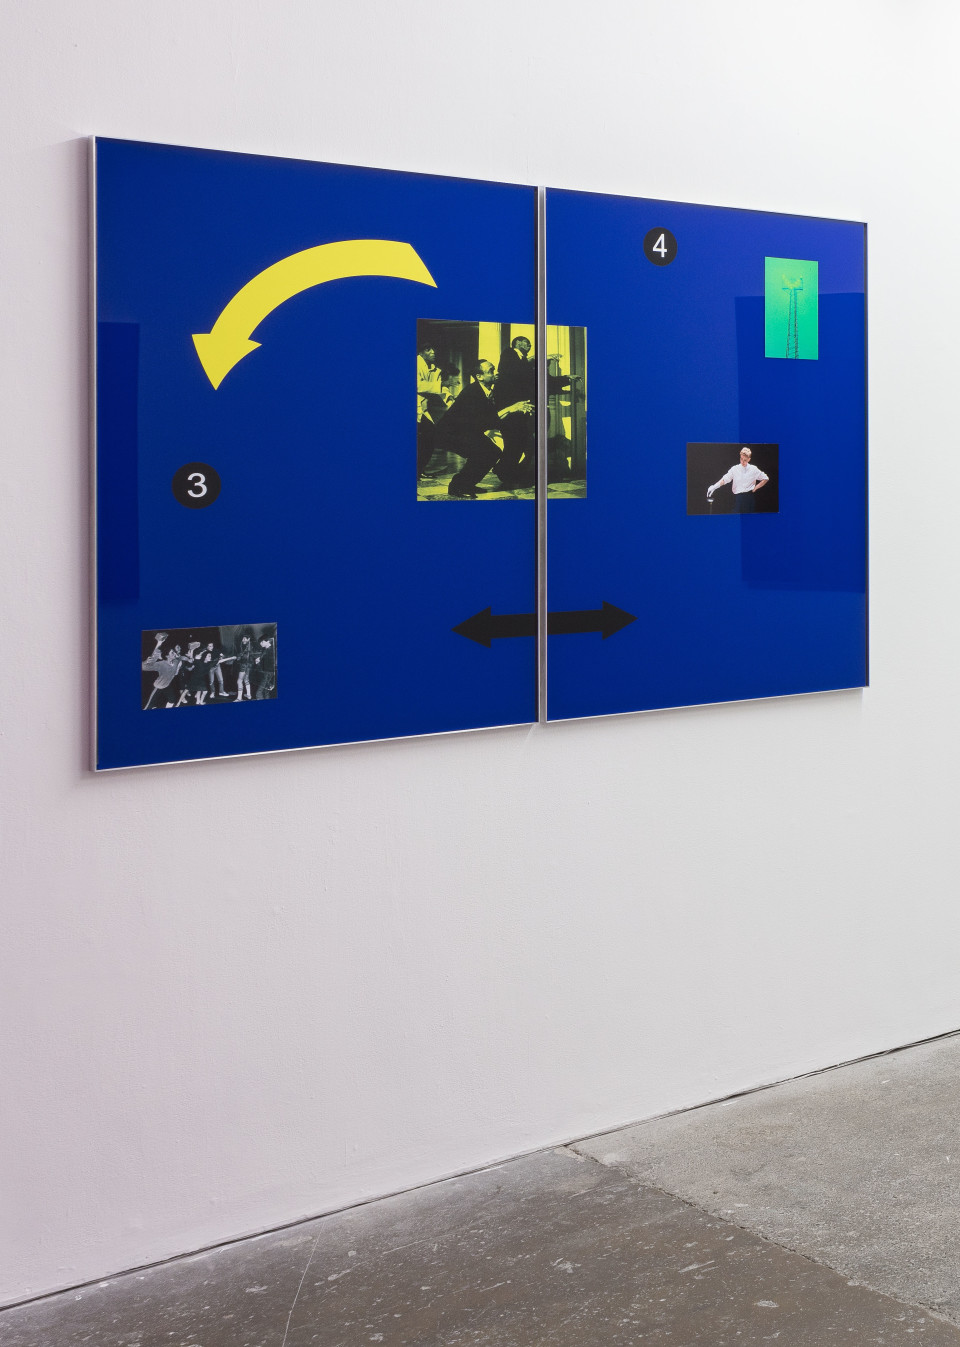 Simeon Barclay Winner takes all, 2016 Aluminium, blue acrylic, vinyl adhesive 119 x 180 x 2 cm 46 7/8 x 70 7/8 x 3/4 in